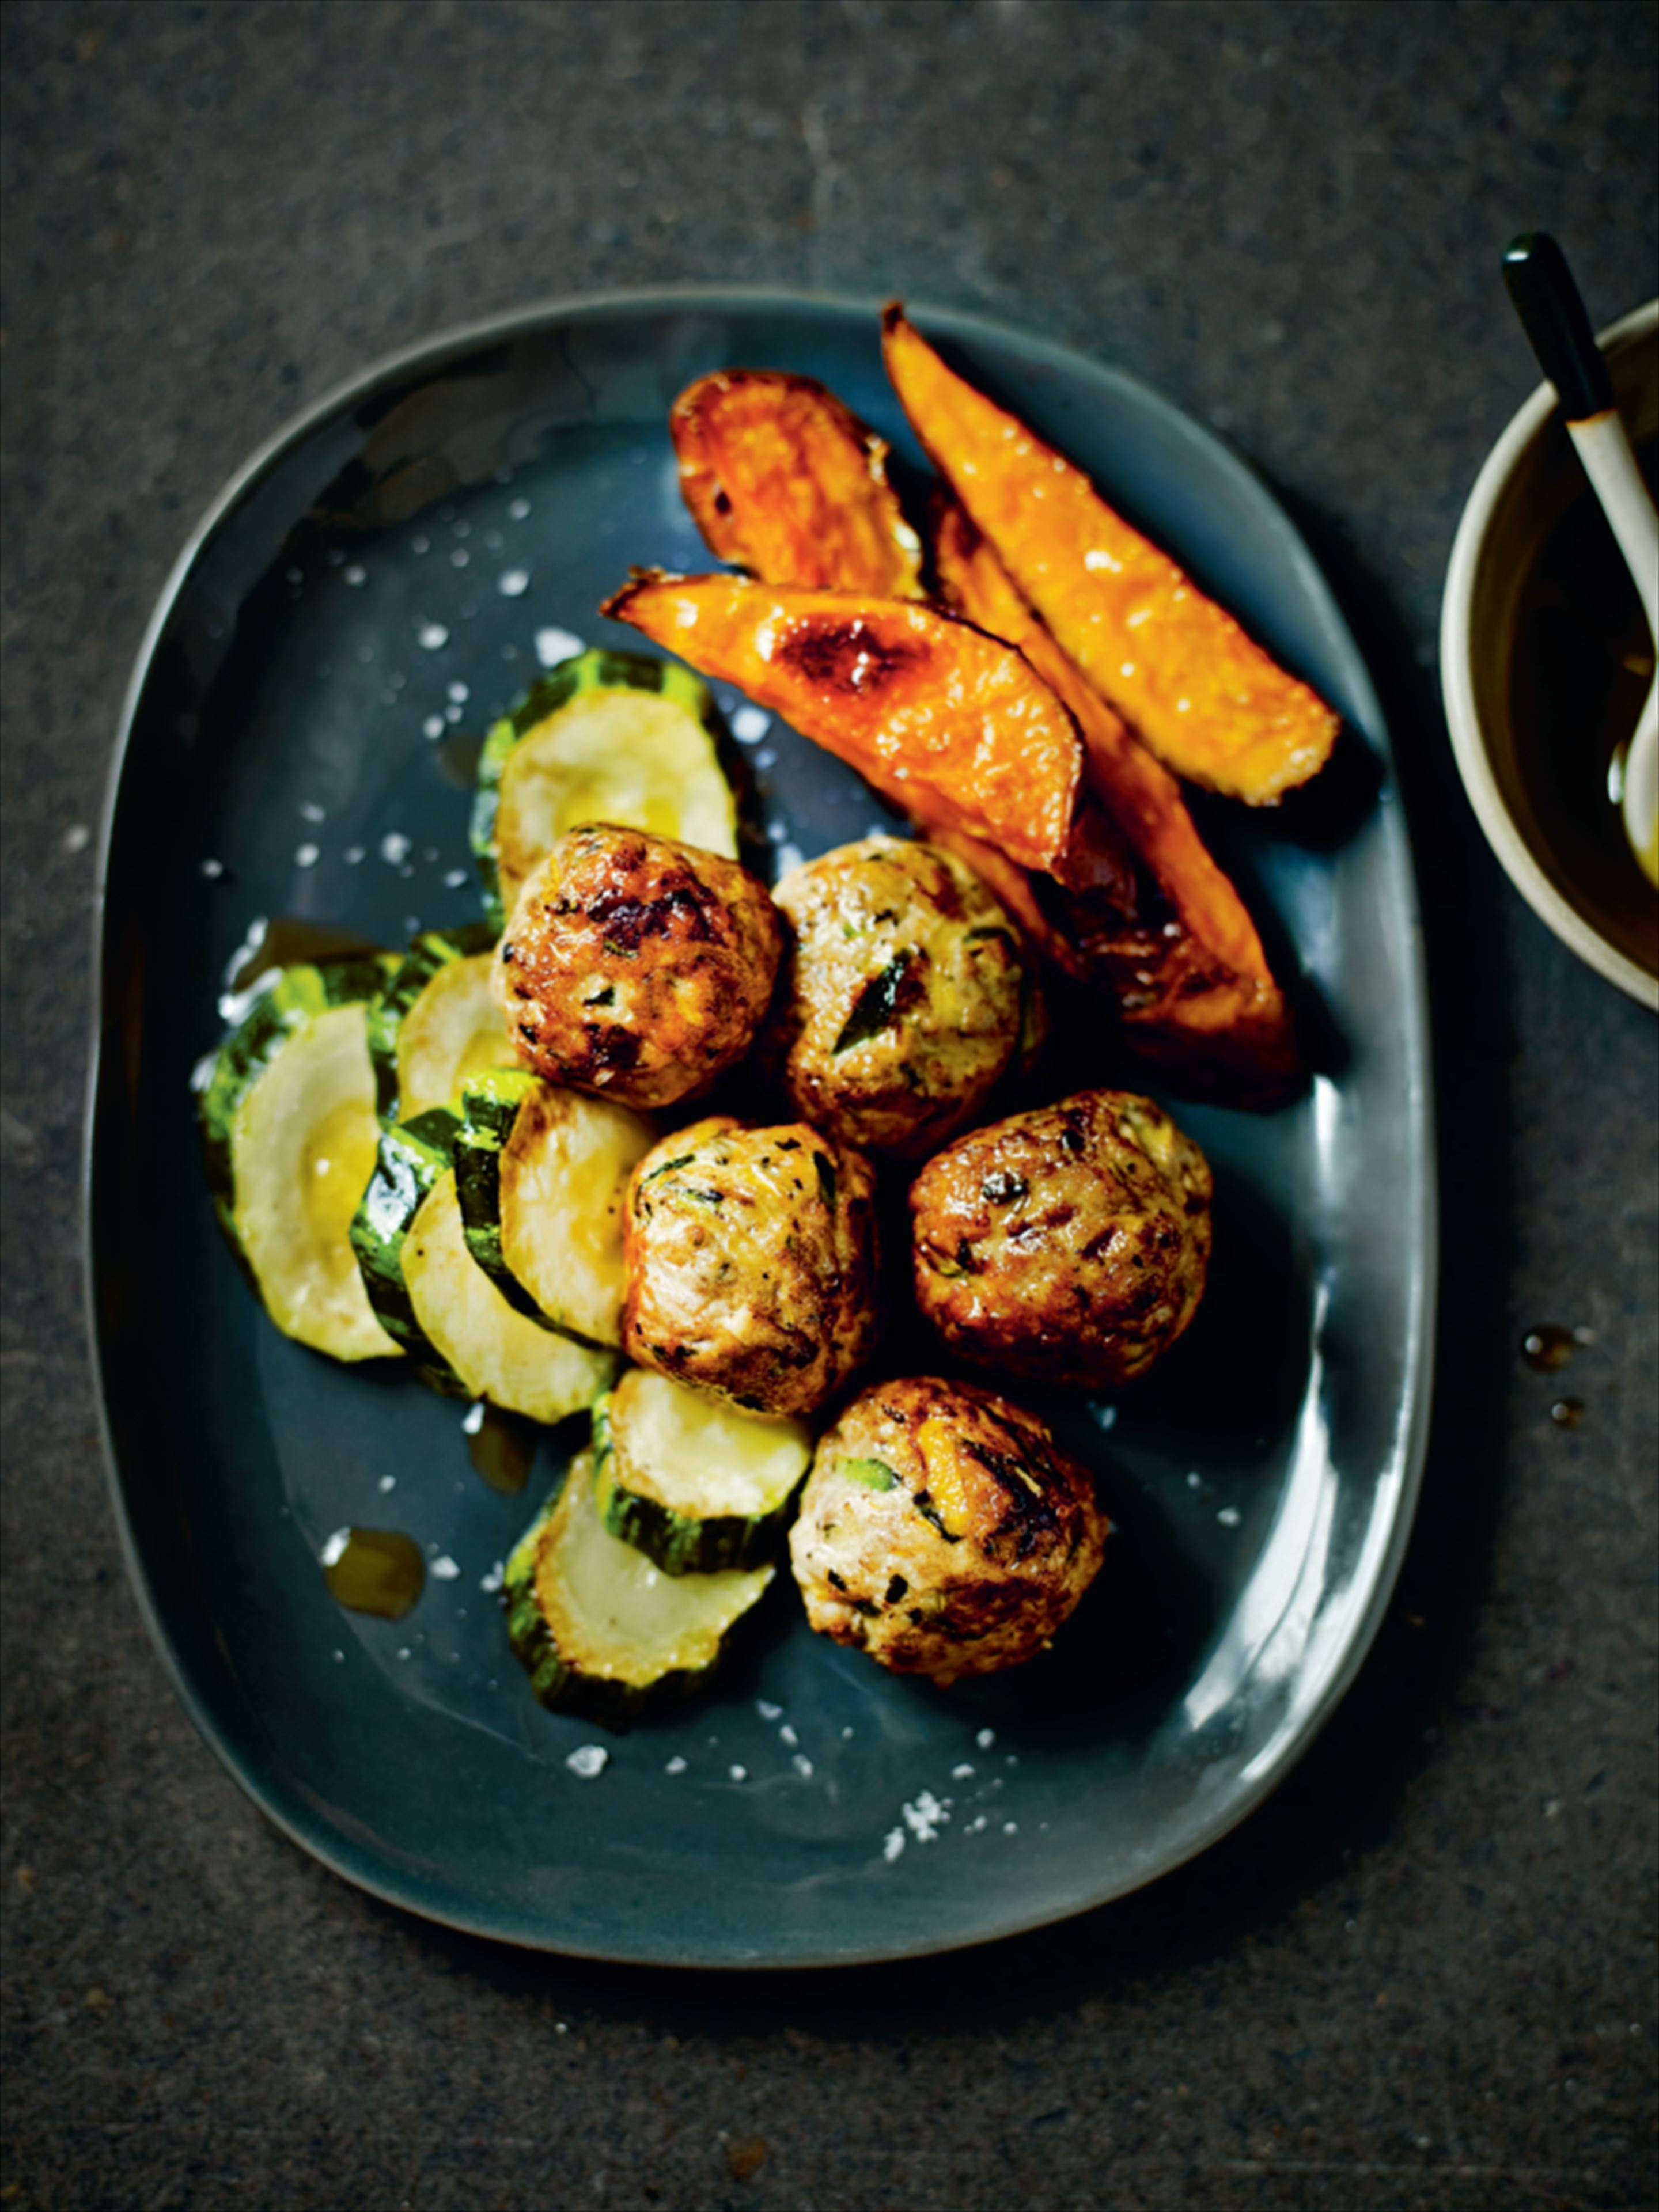 Turkey meatballs with sautéed courgette and roasted sweet potato